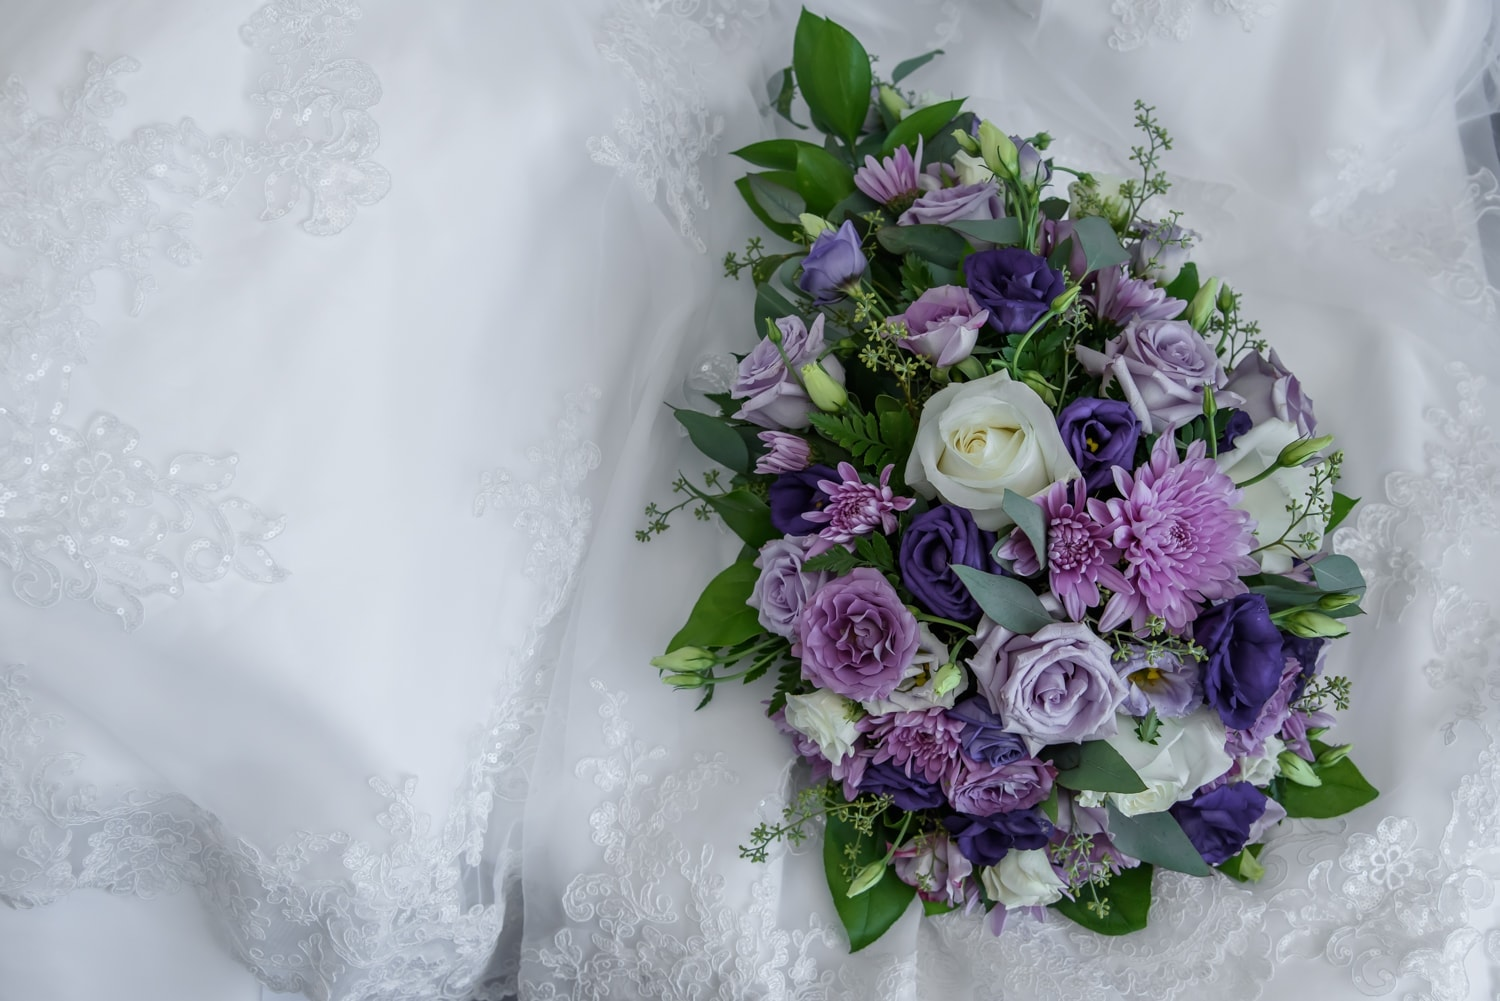 A real flower wedding bridal bouquet with ivory and purple flowers.